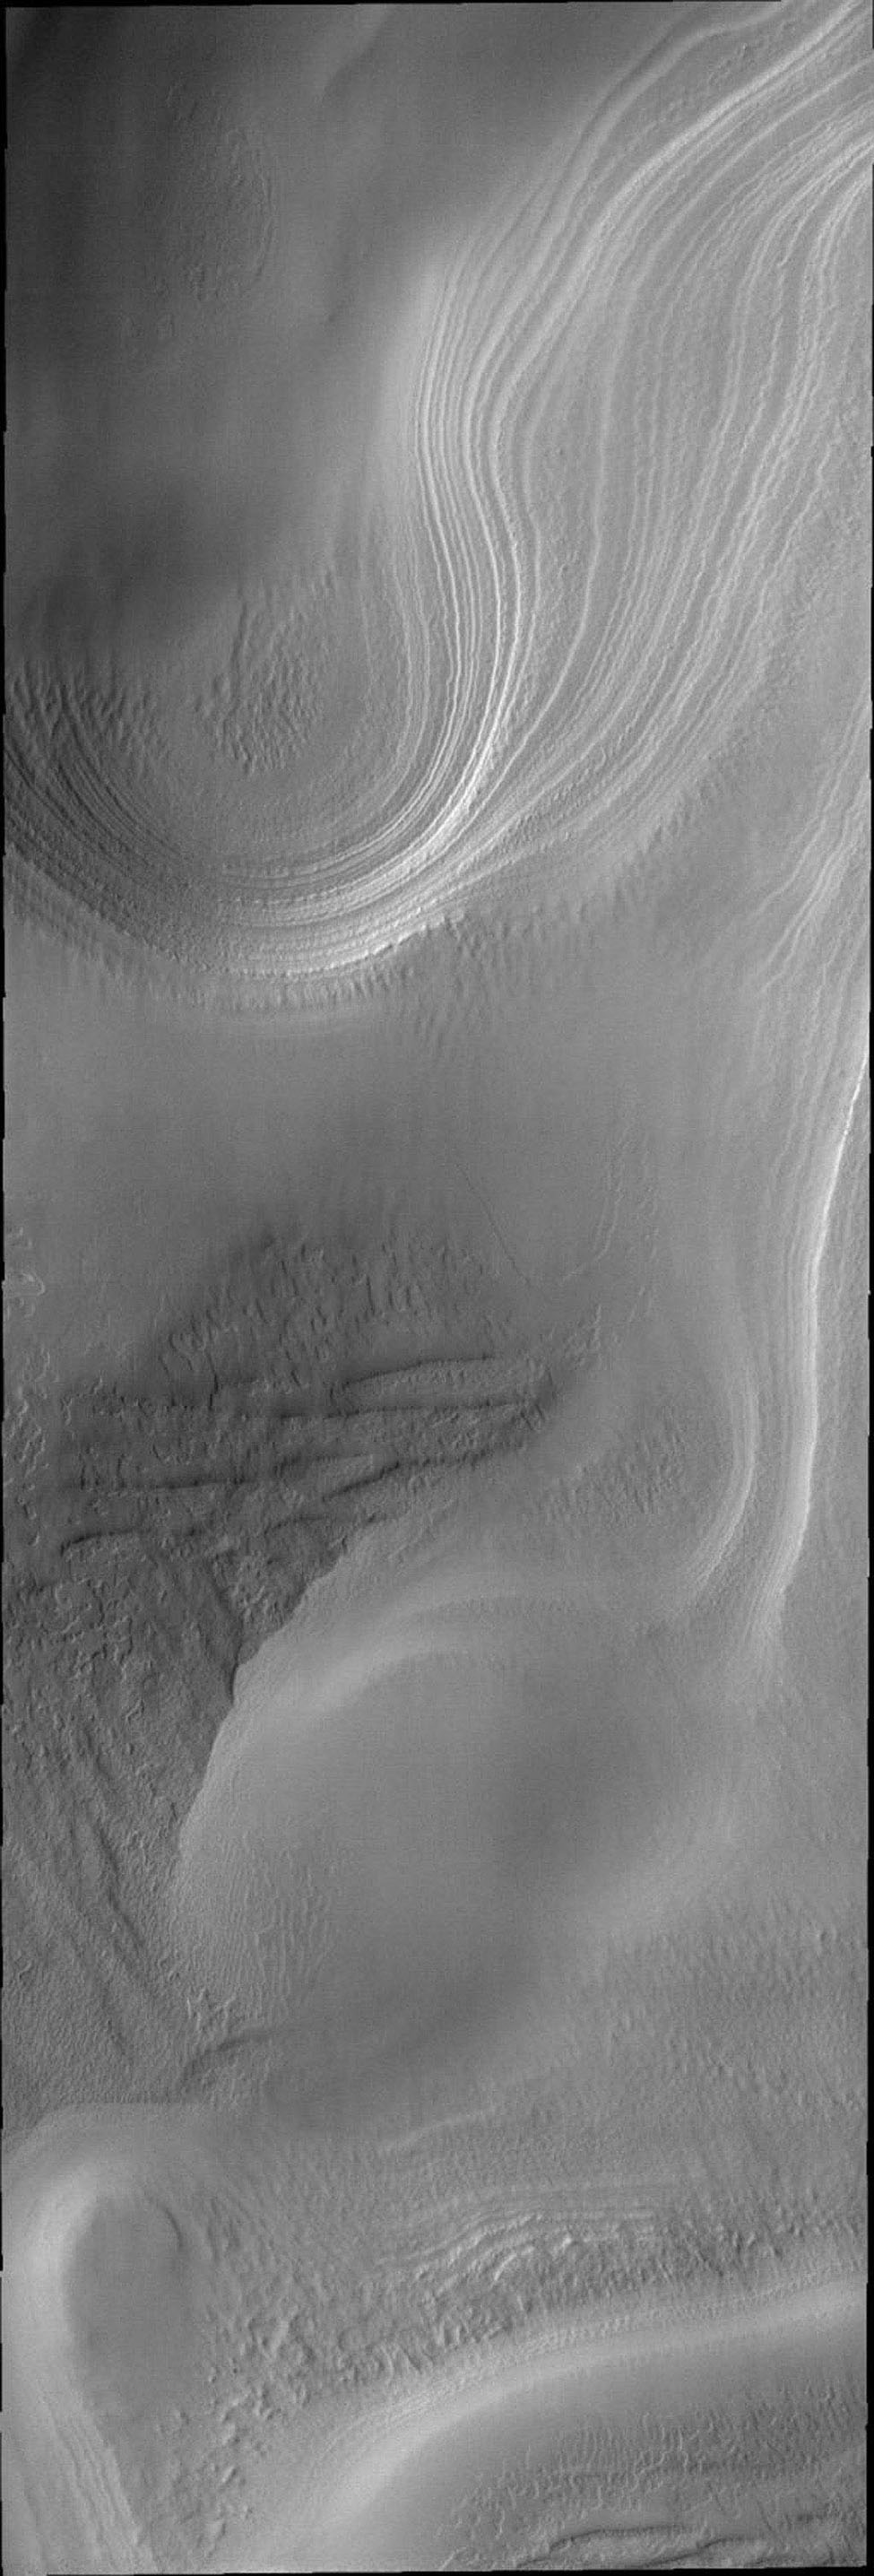 This image from NASA's Mars Odyssey shows beautiful swirling layers and surface textures at the south pole of Mars.